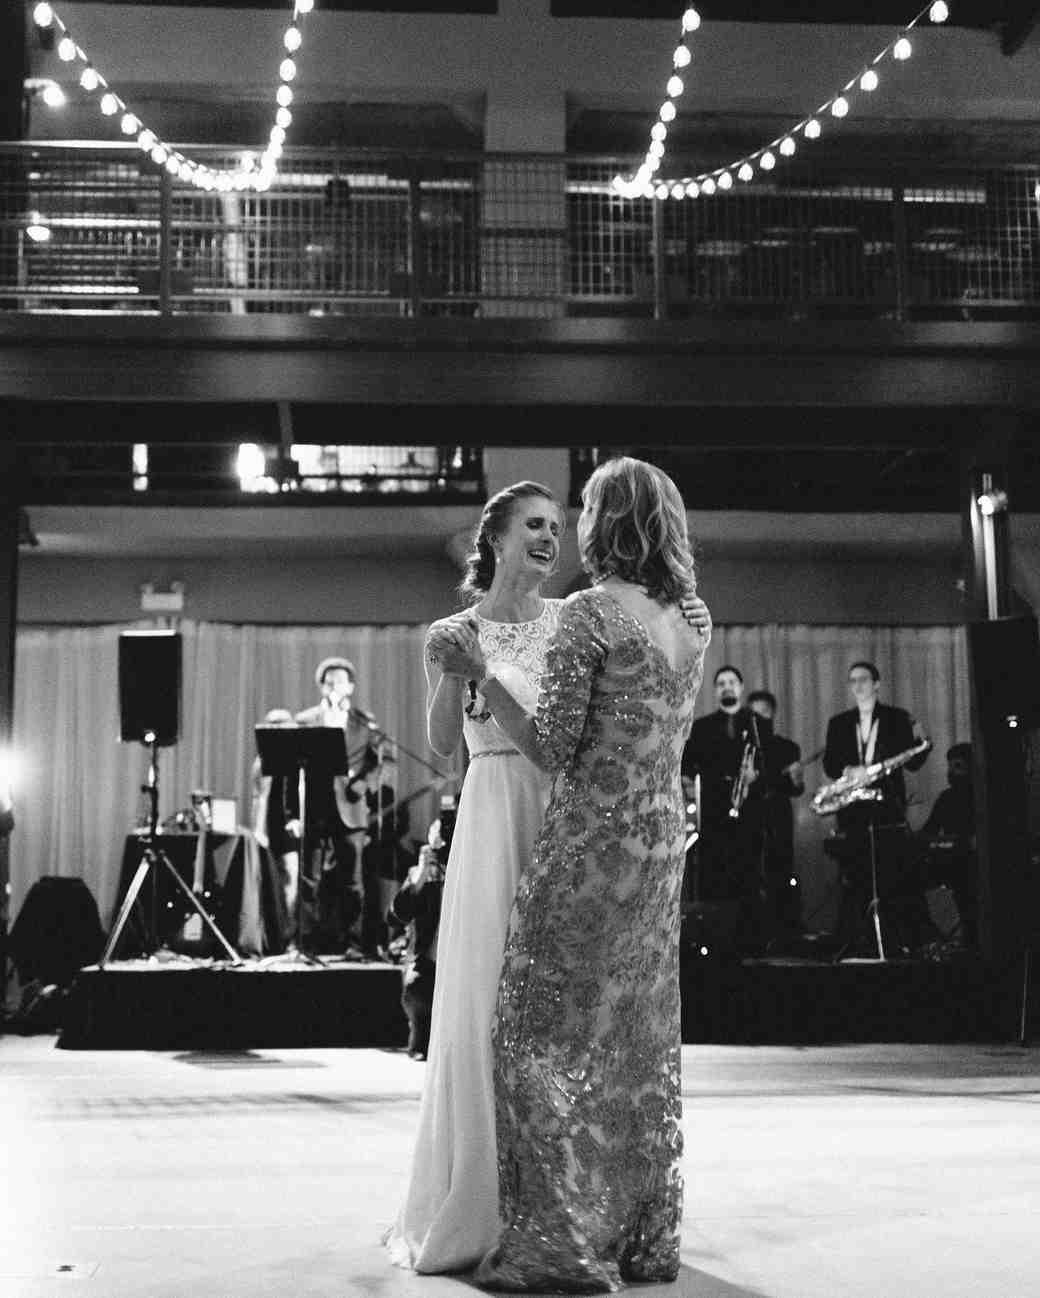 A Bride and Her Mother Dancing at Her Wedding Reception